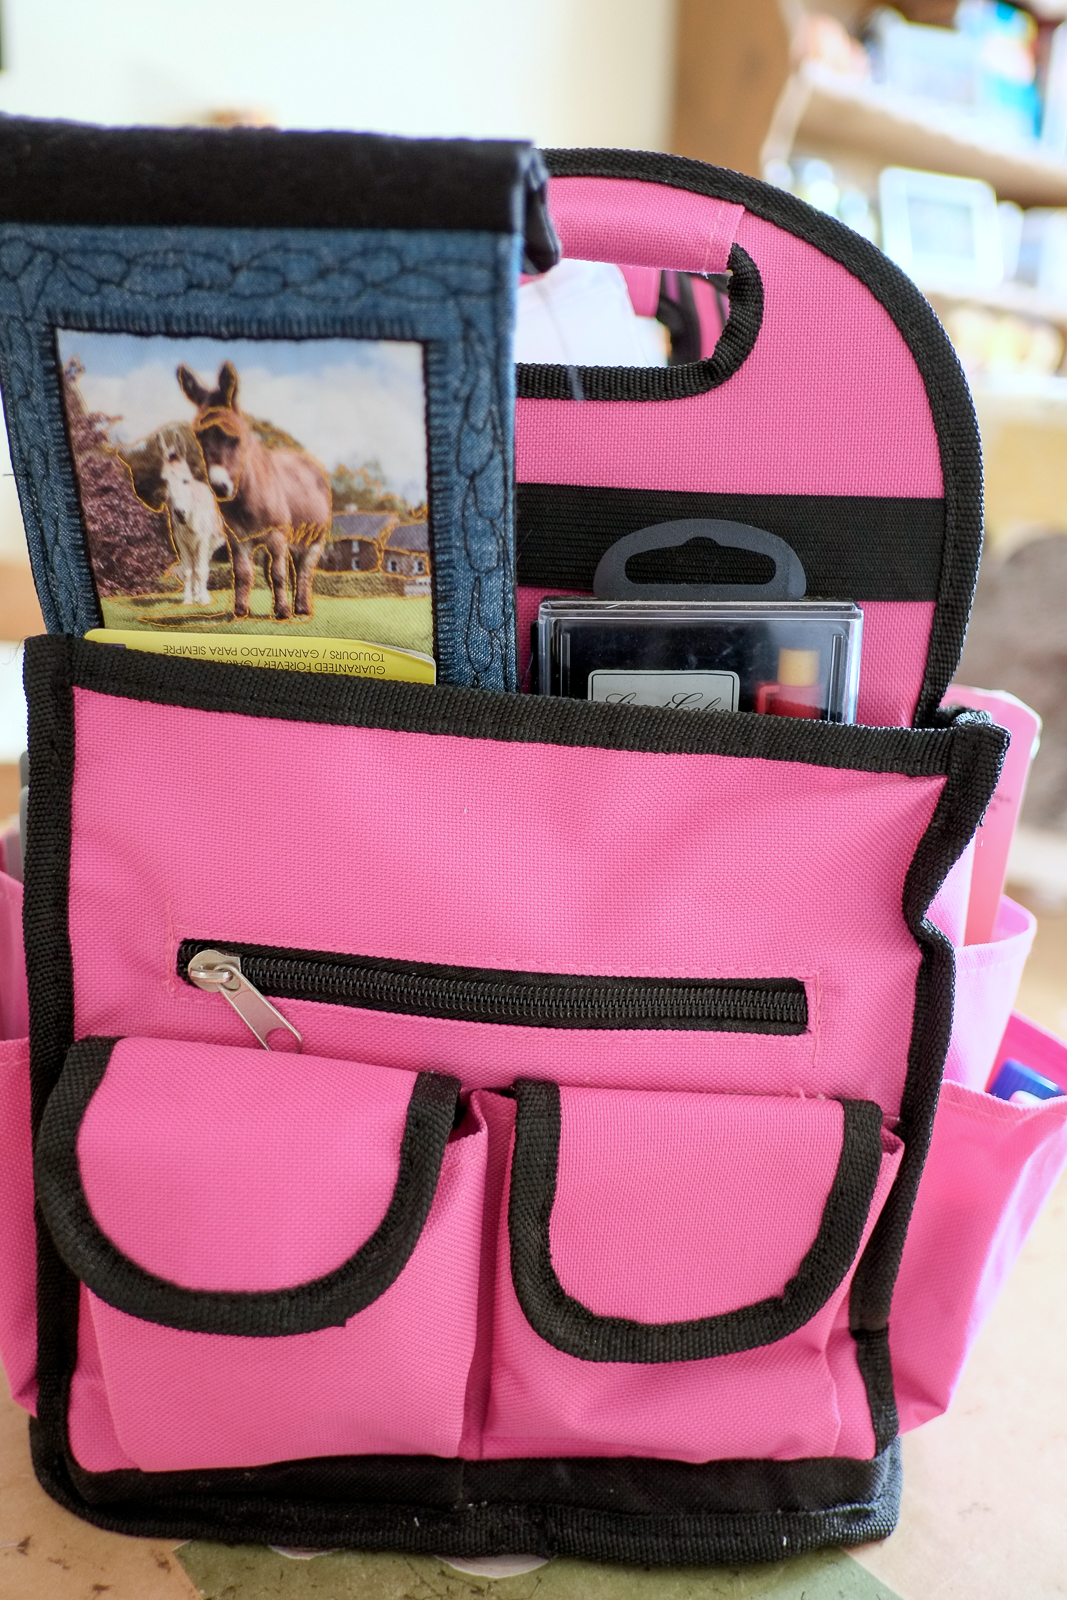 Hobby lobby craft bags - Suzanne Made Me The Donkey Wallet Where I Keep My Hand Sewing Needles And I Keep Some Of My Perle And Embroidery Thread In This Cigar Case